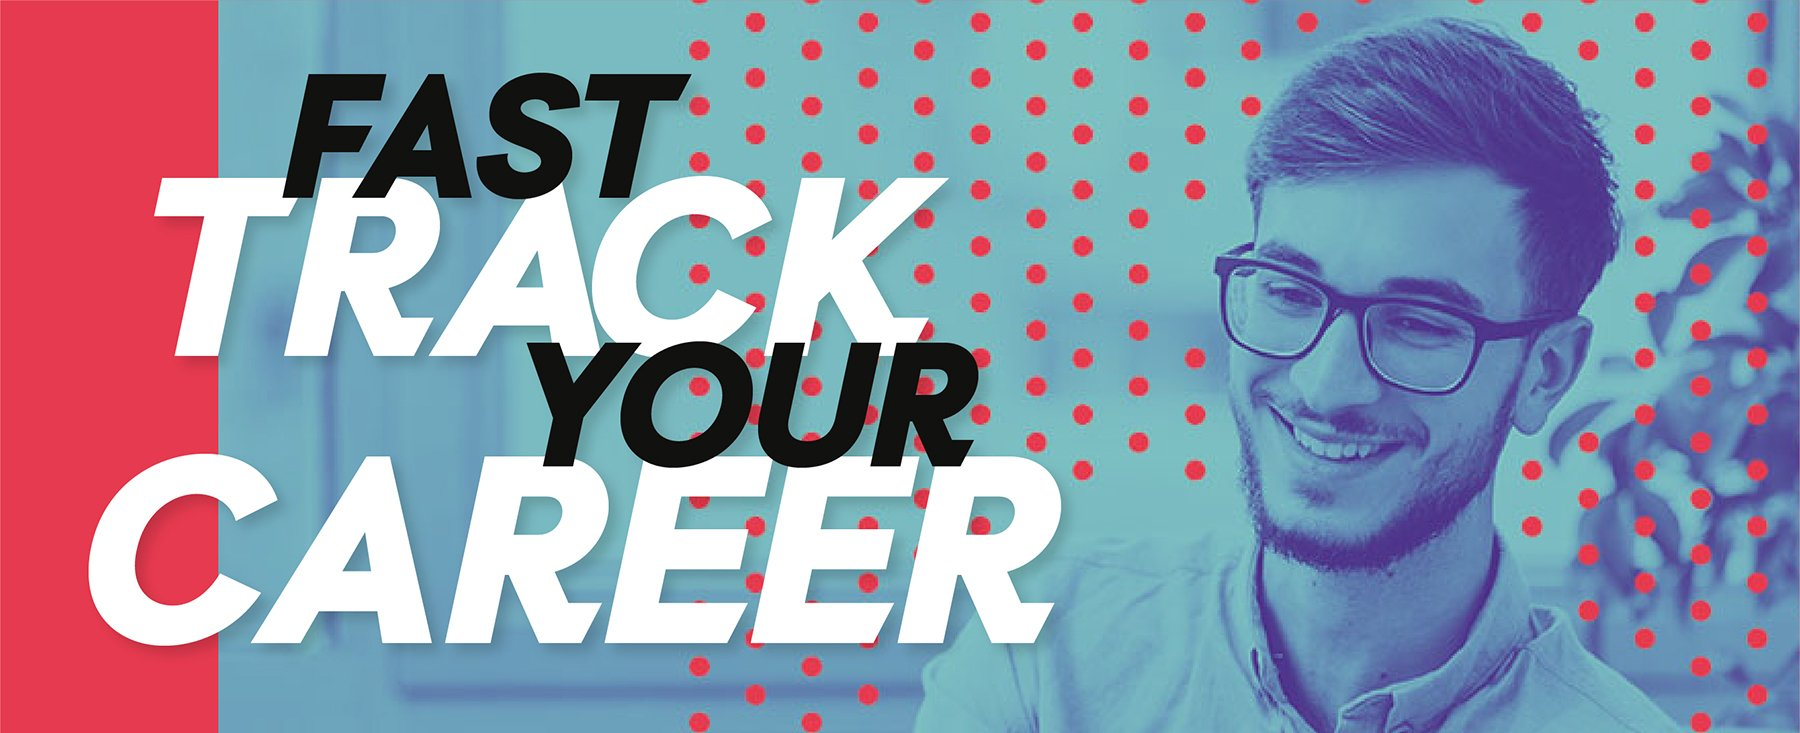 Fast Track your career